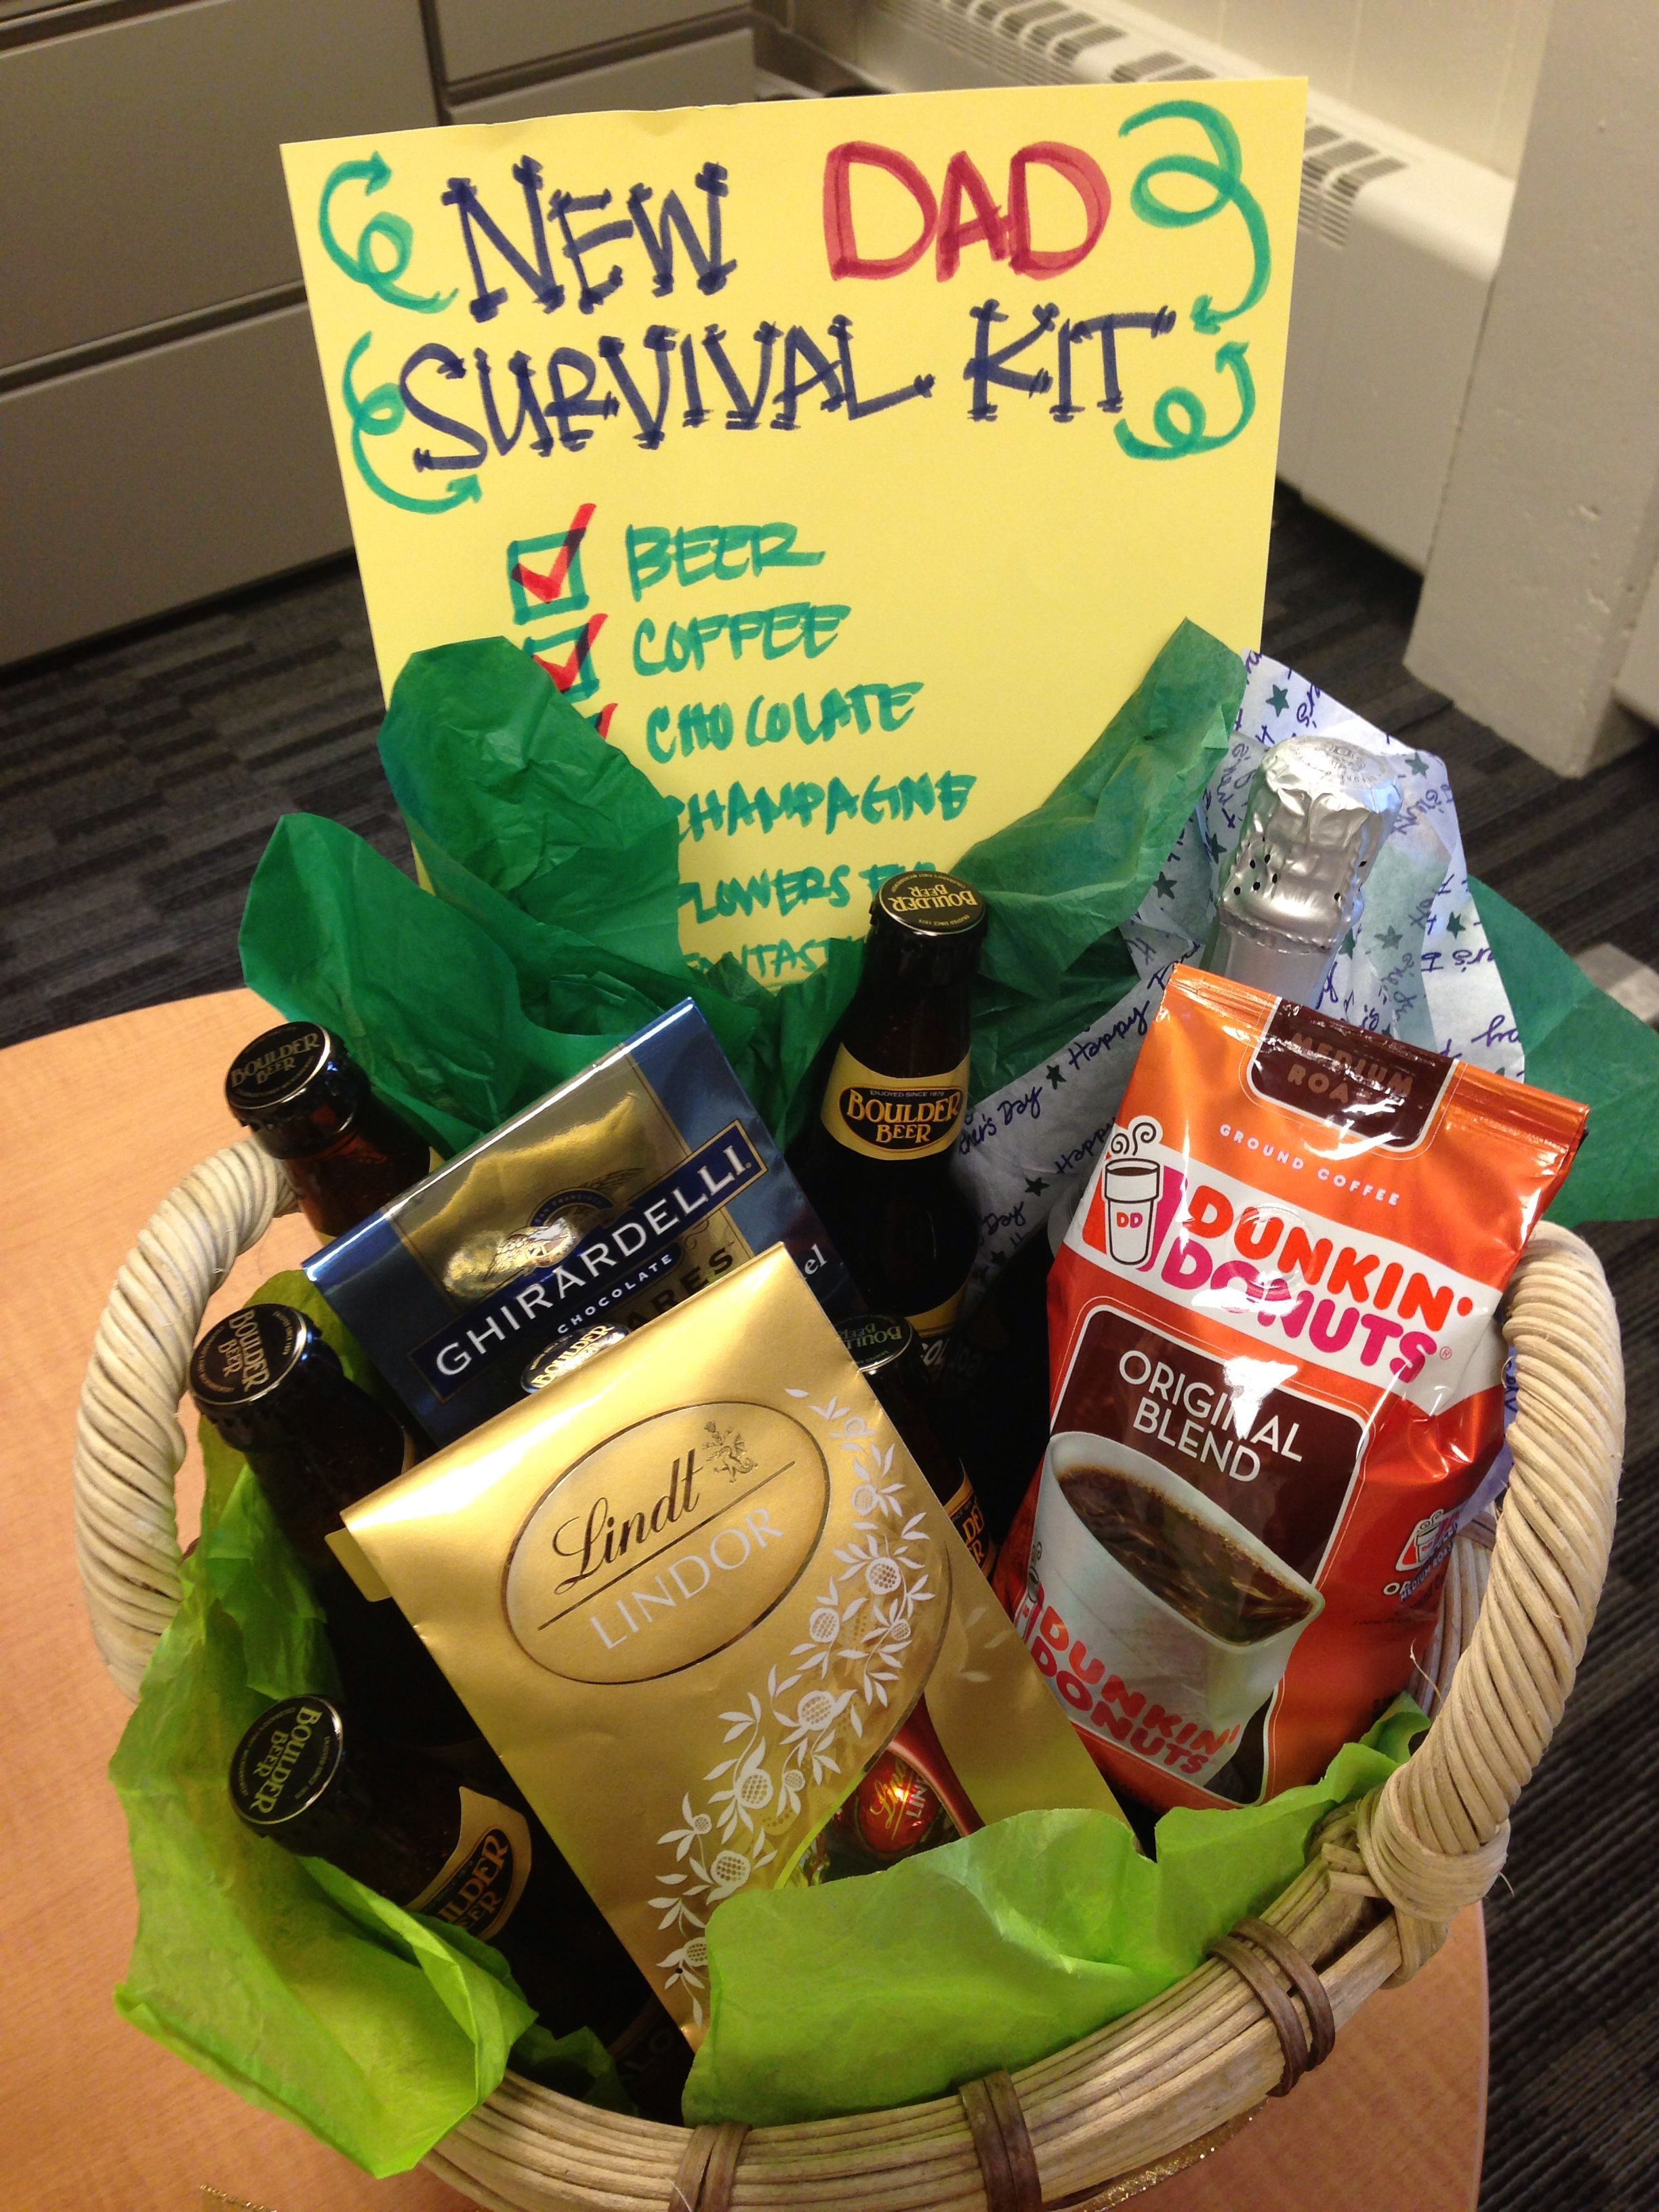 A Pinspired New Dad Survival Kit My Coworkers And I Made